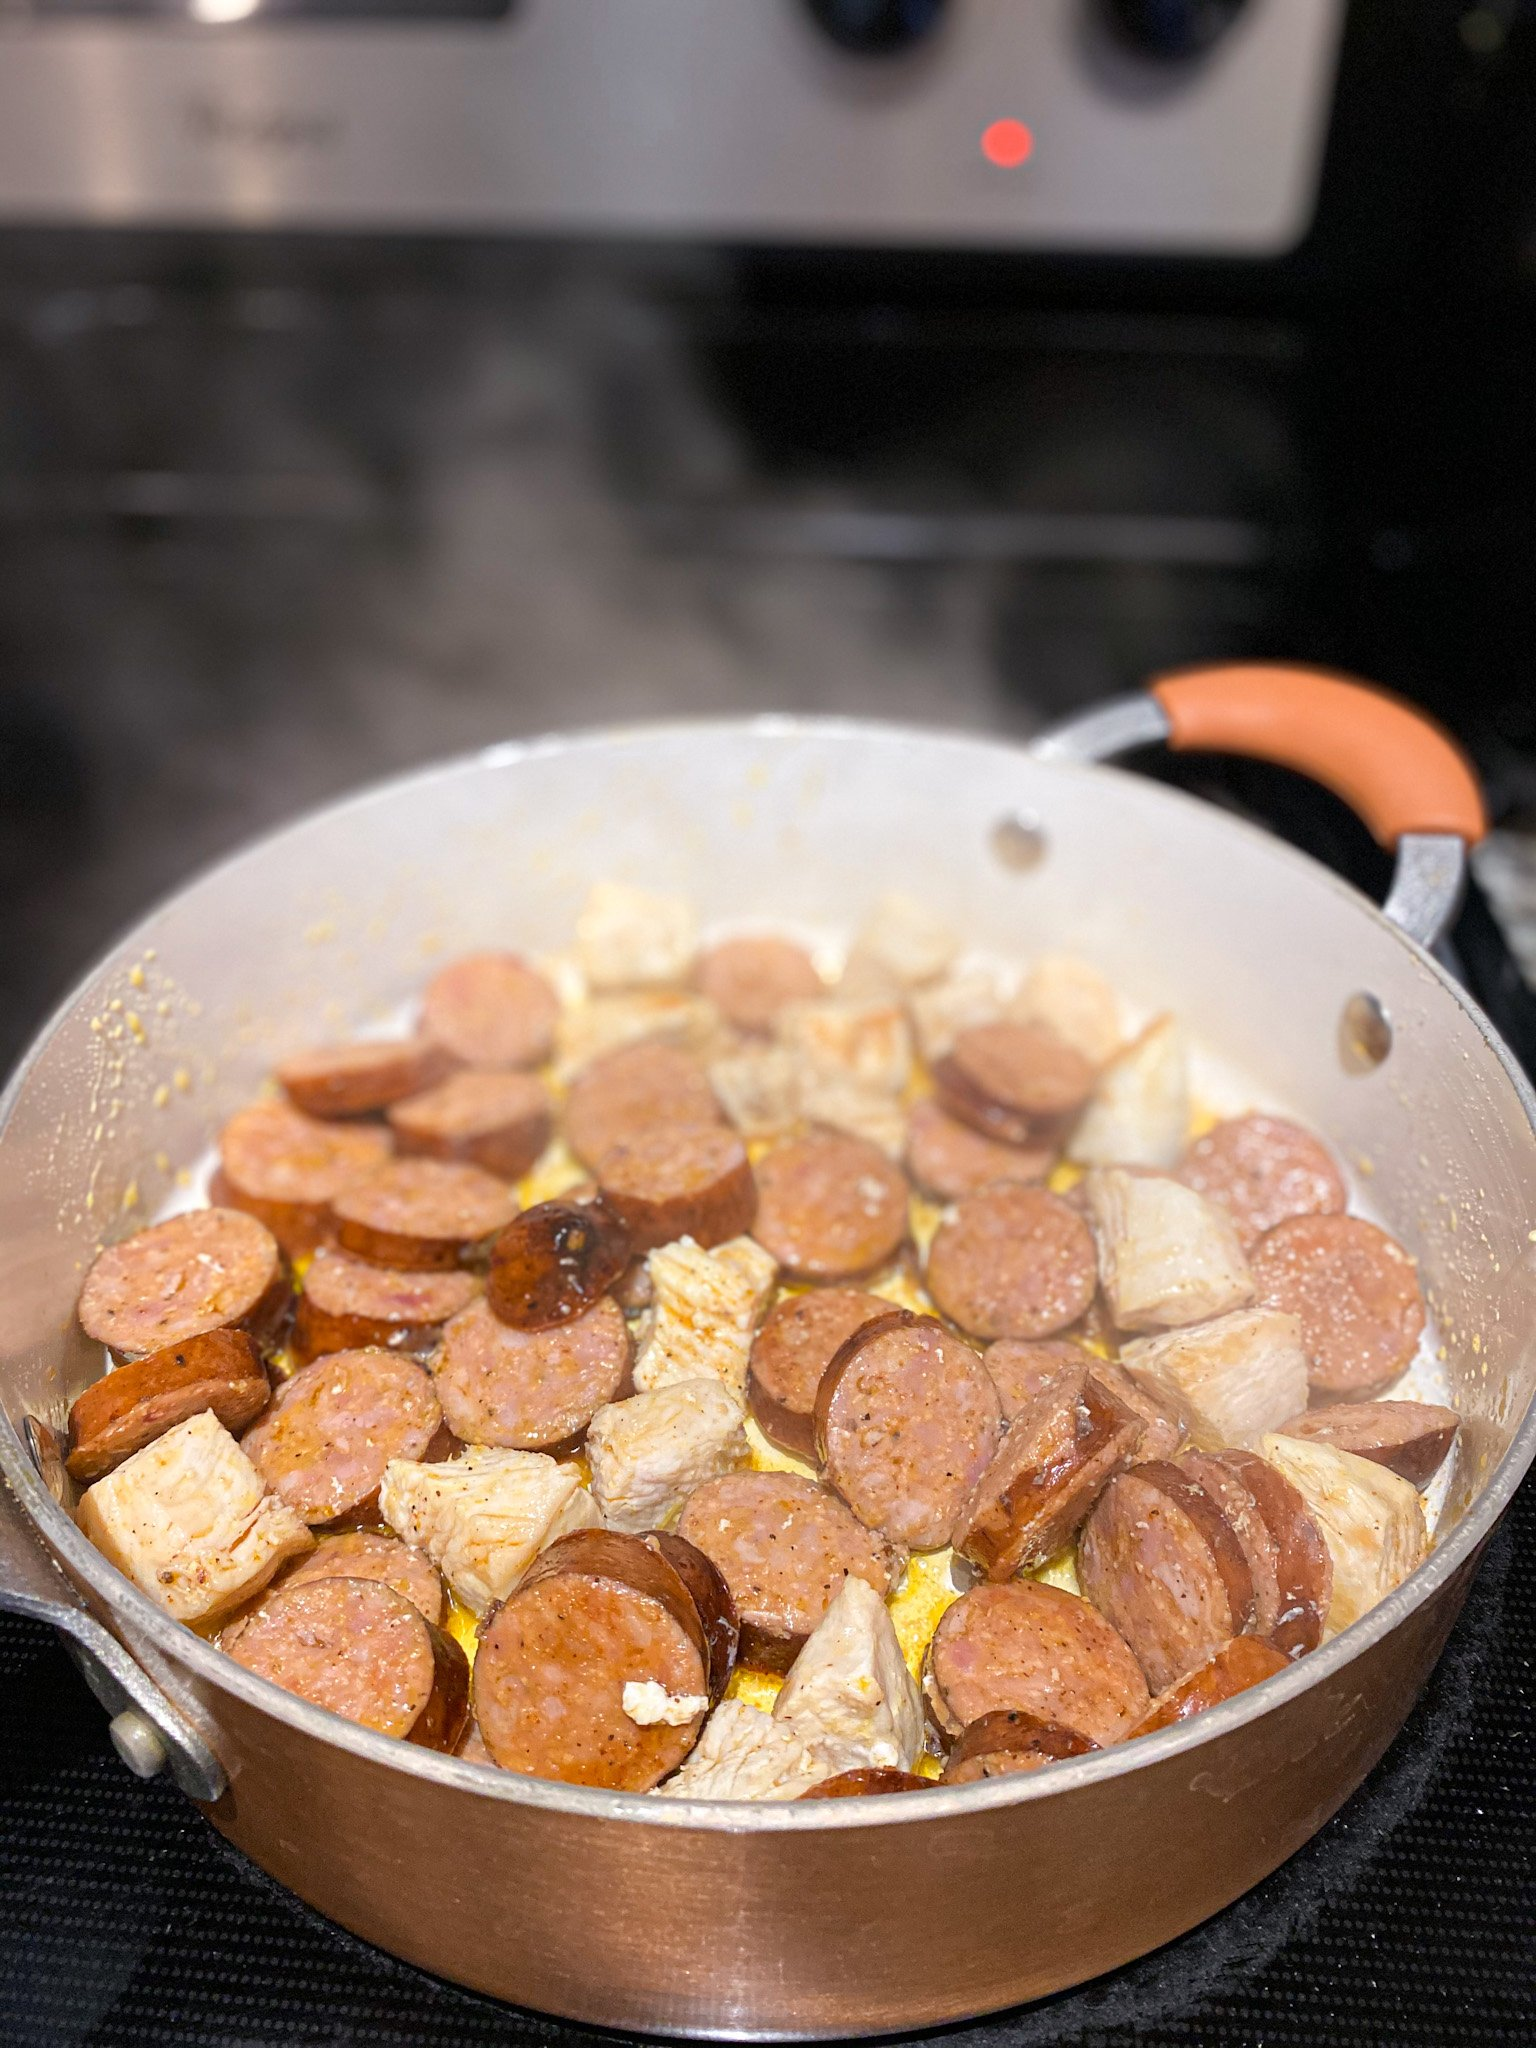 andouille sausage and chicken breast